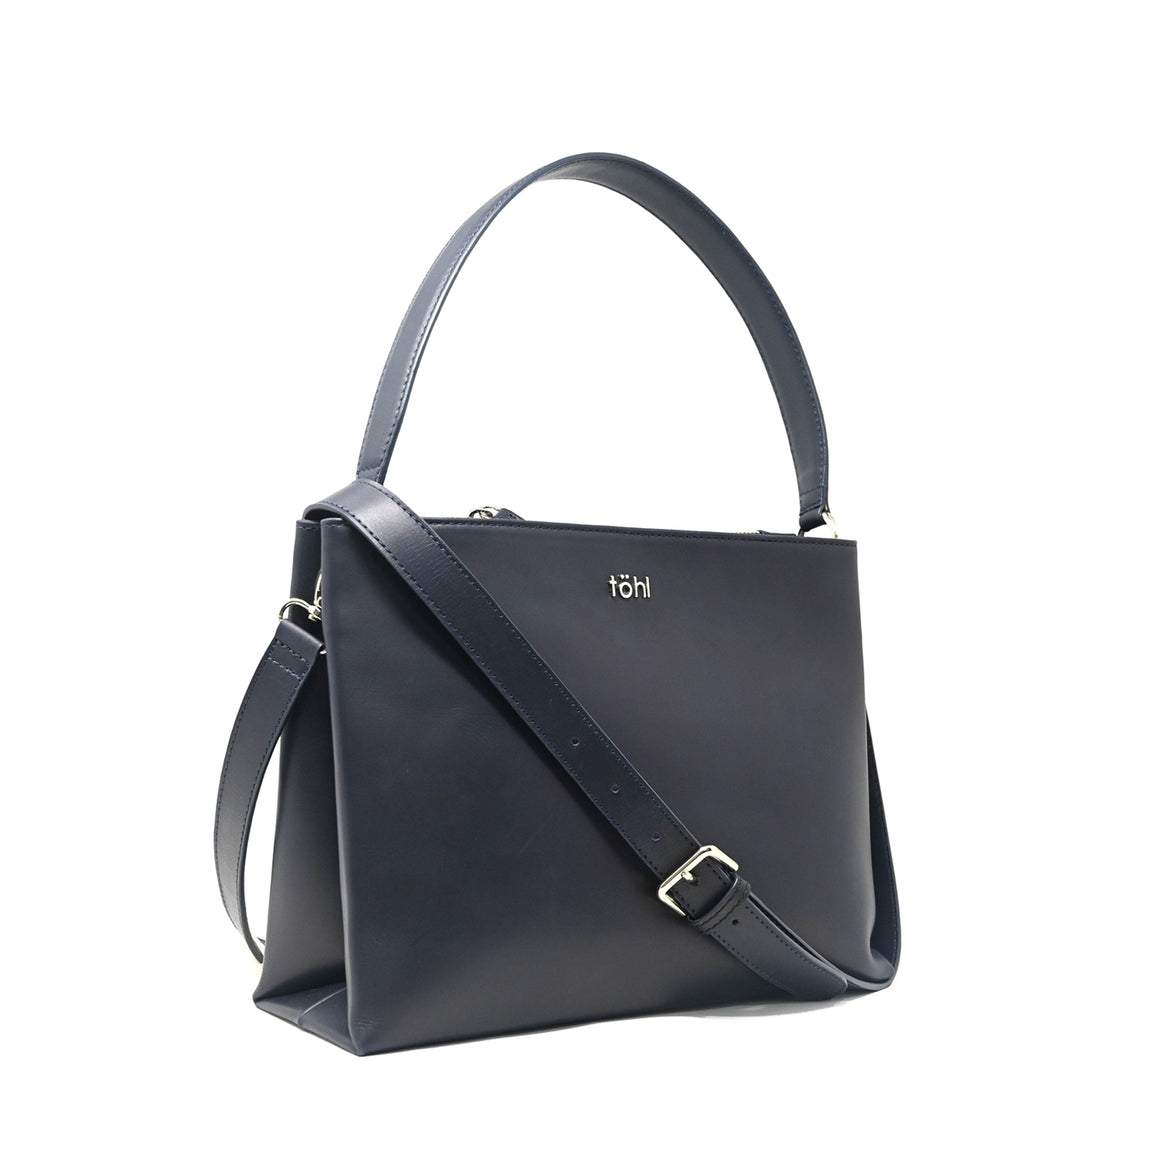 SB0027 - TOHL CHENEY WOMEN'S SHOULDER BAG - MID NIGHT